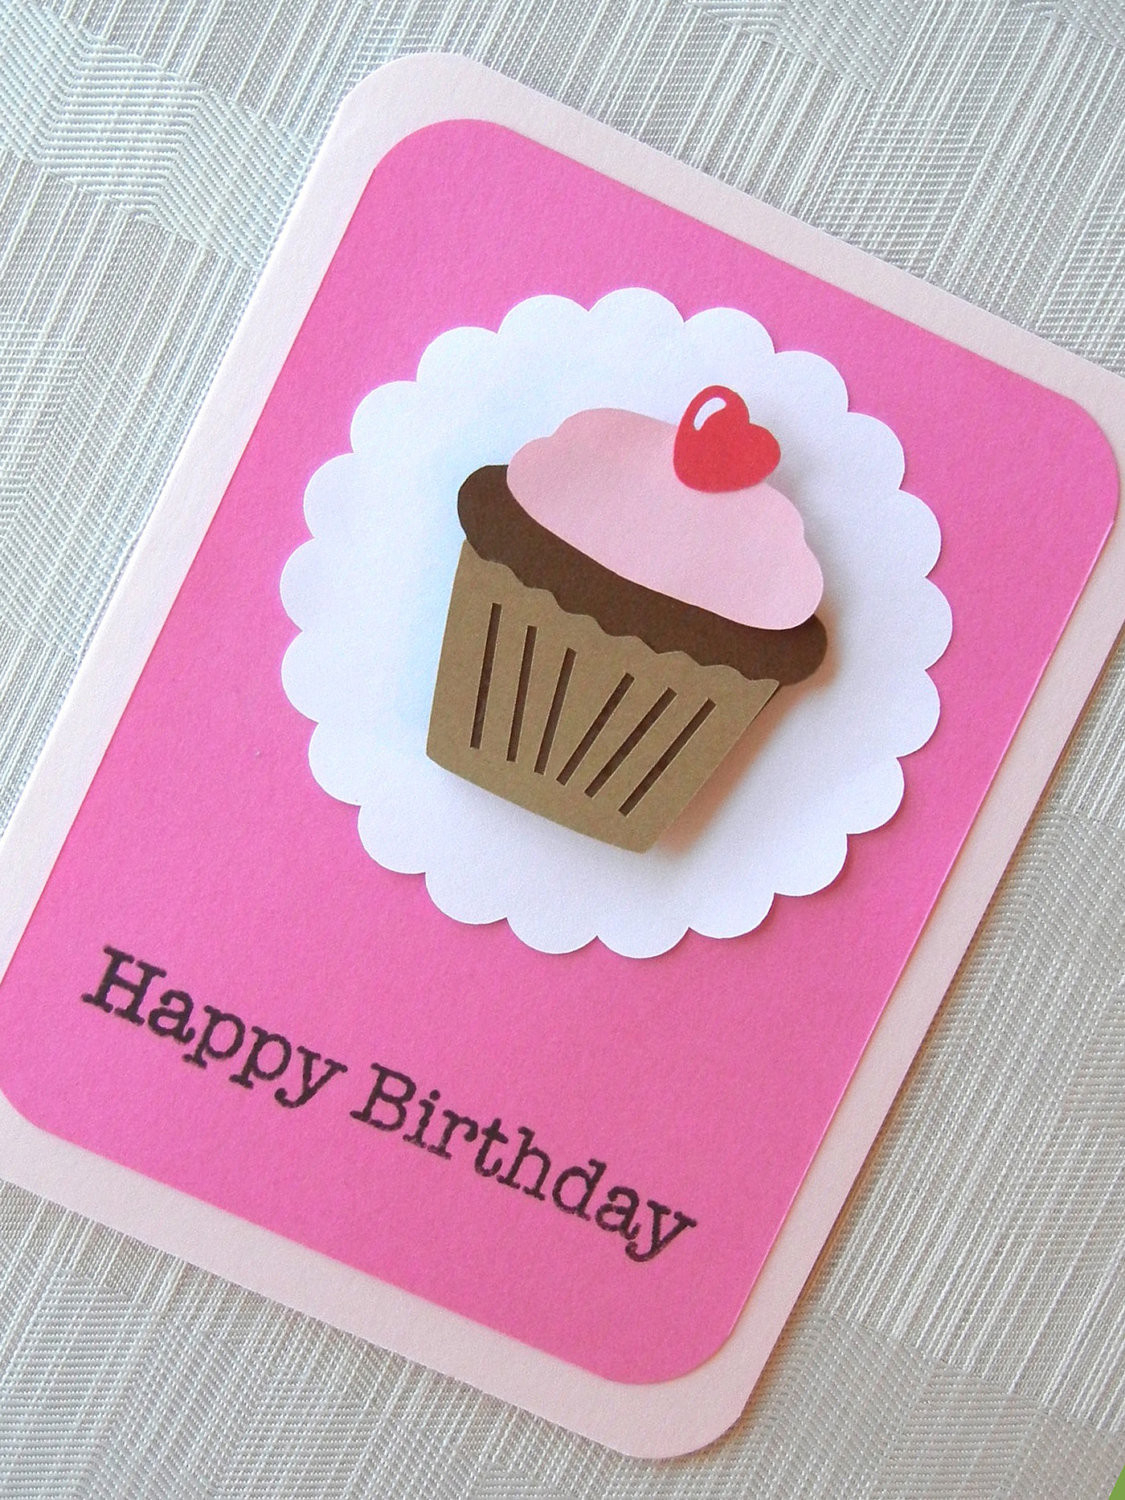 Diy Birthday Card Ideas 34 Truly Amazing Diy Birthday Cards Thats Over Your Head Tons Of